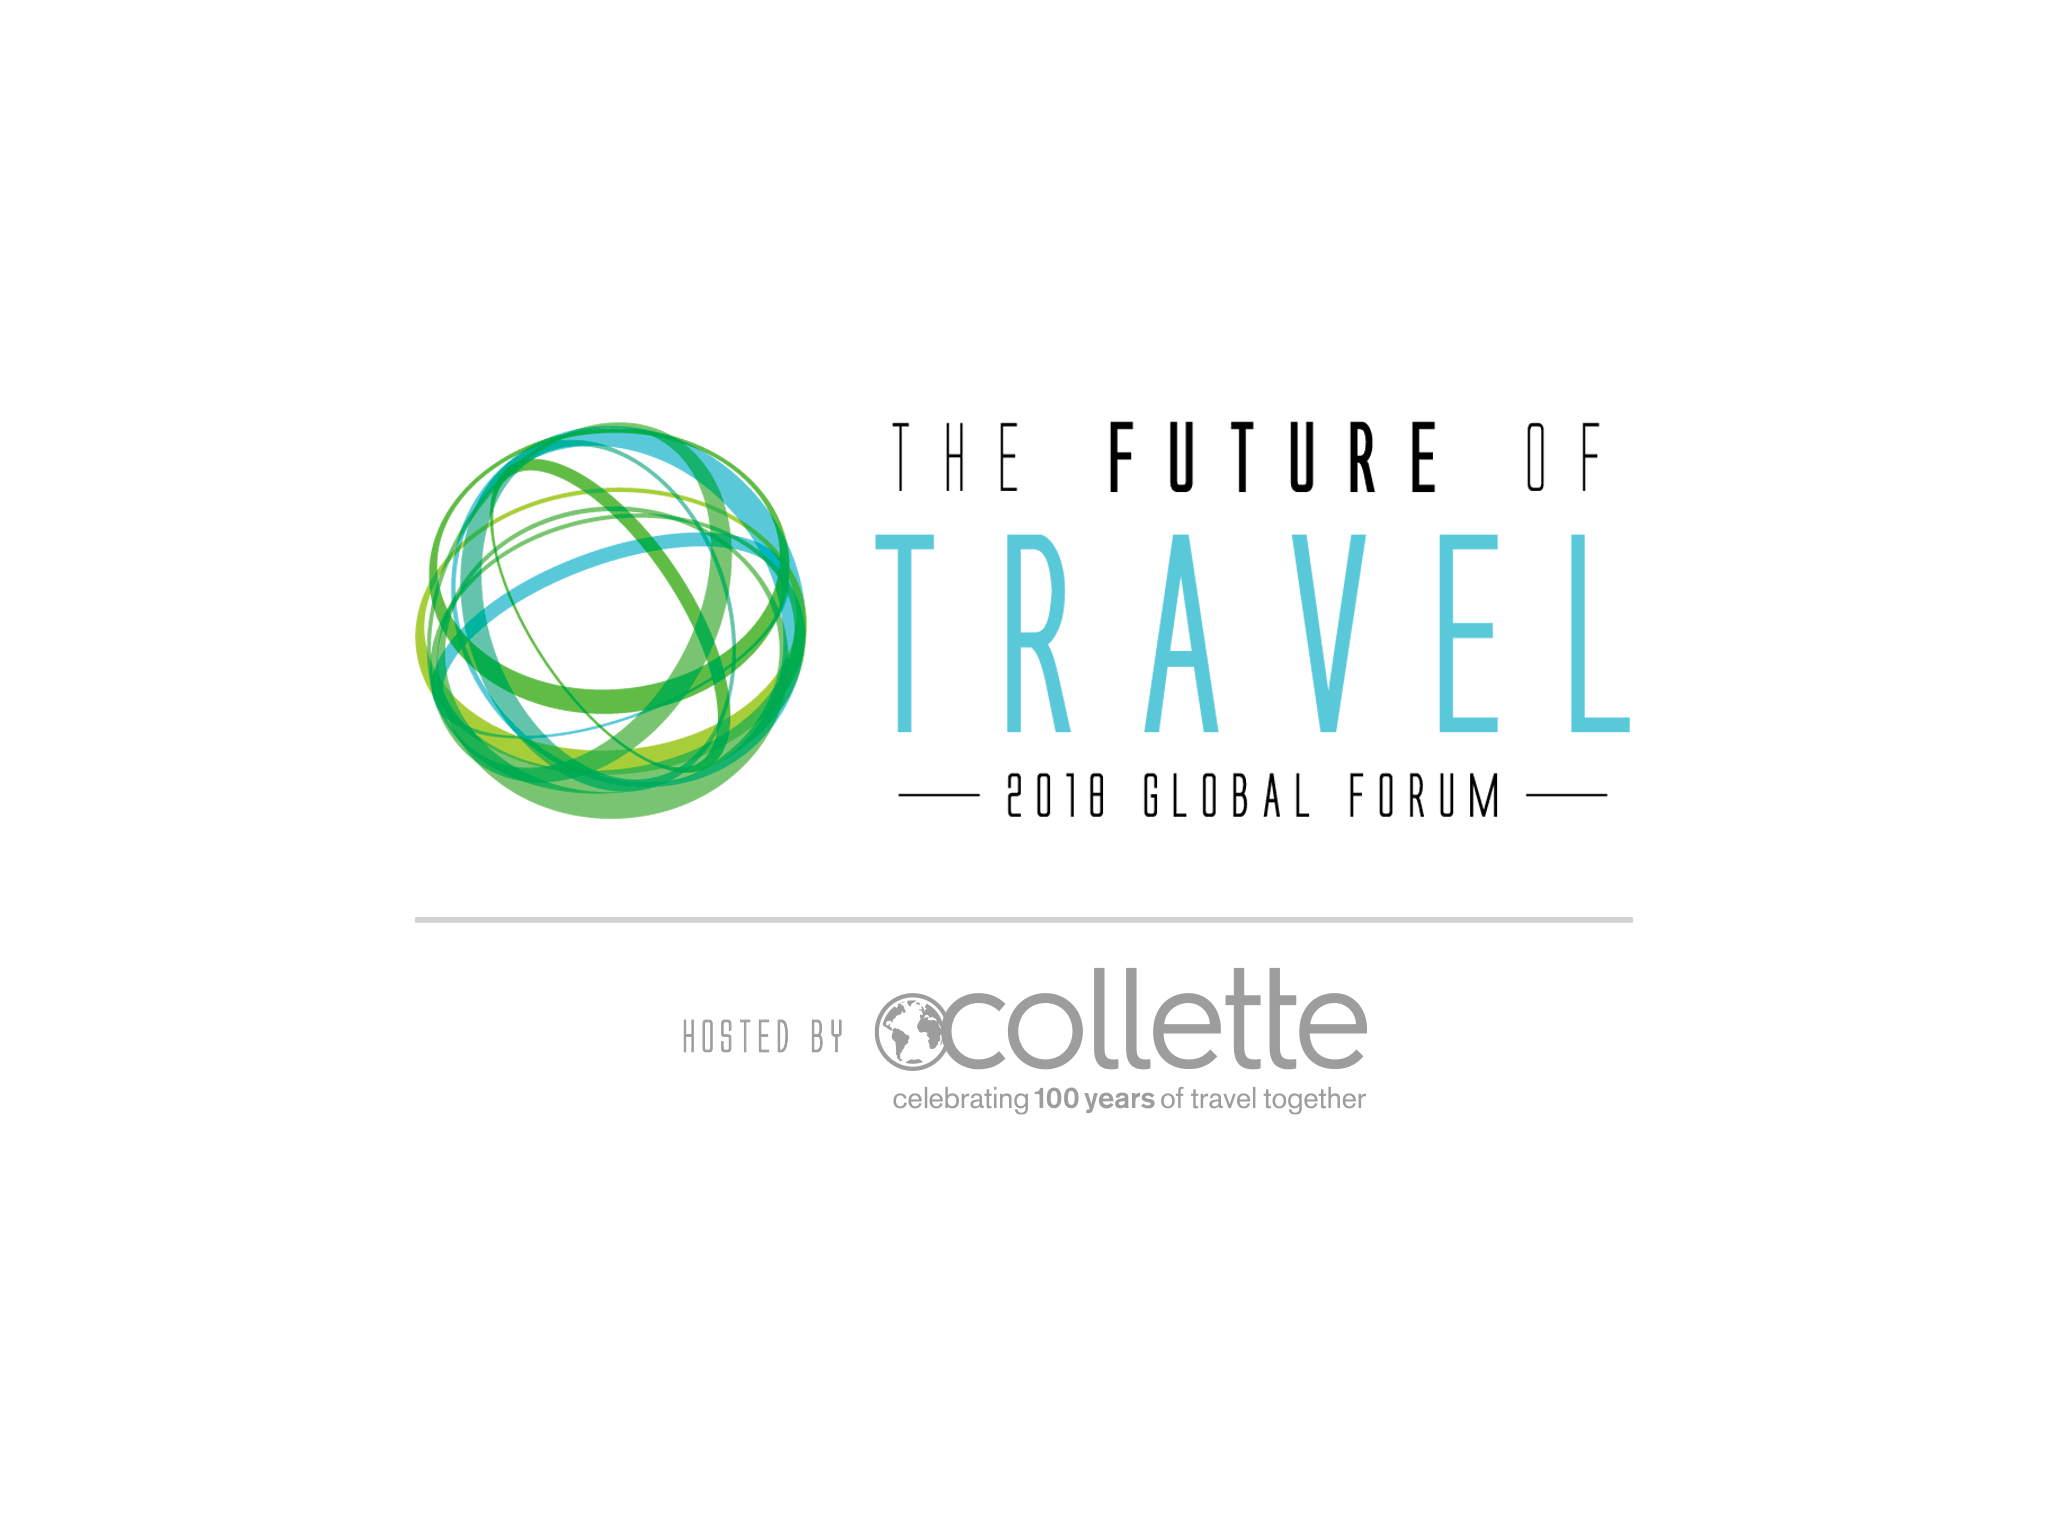 Future of Travel Global Forum Optional Tours